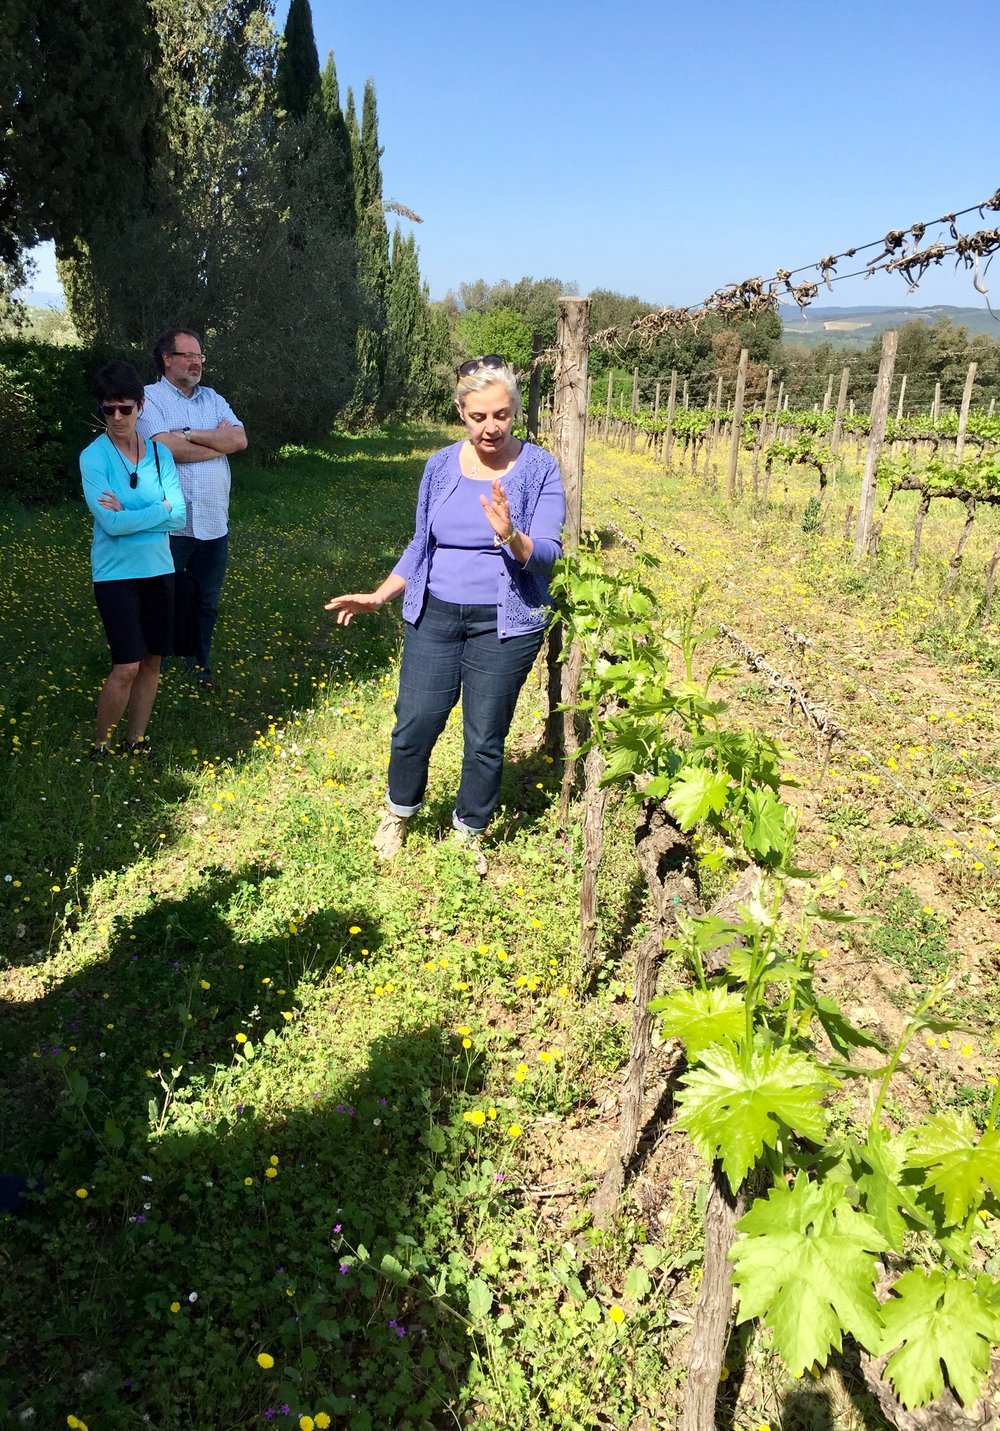 Emilia Silvio Nardi explaining pruning techniques in the vineyards of Silvio Nardi in Montalcino.